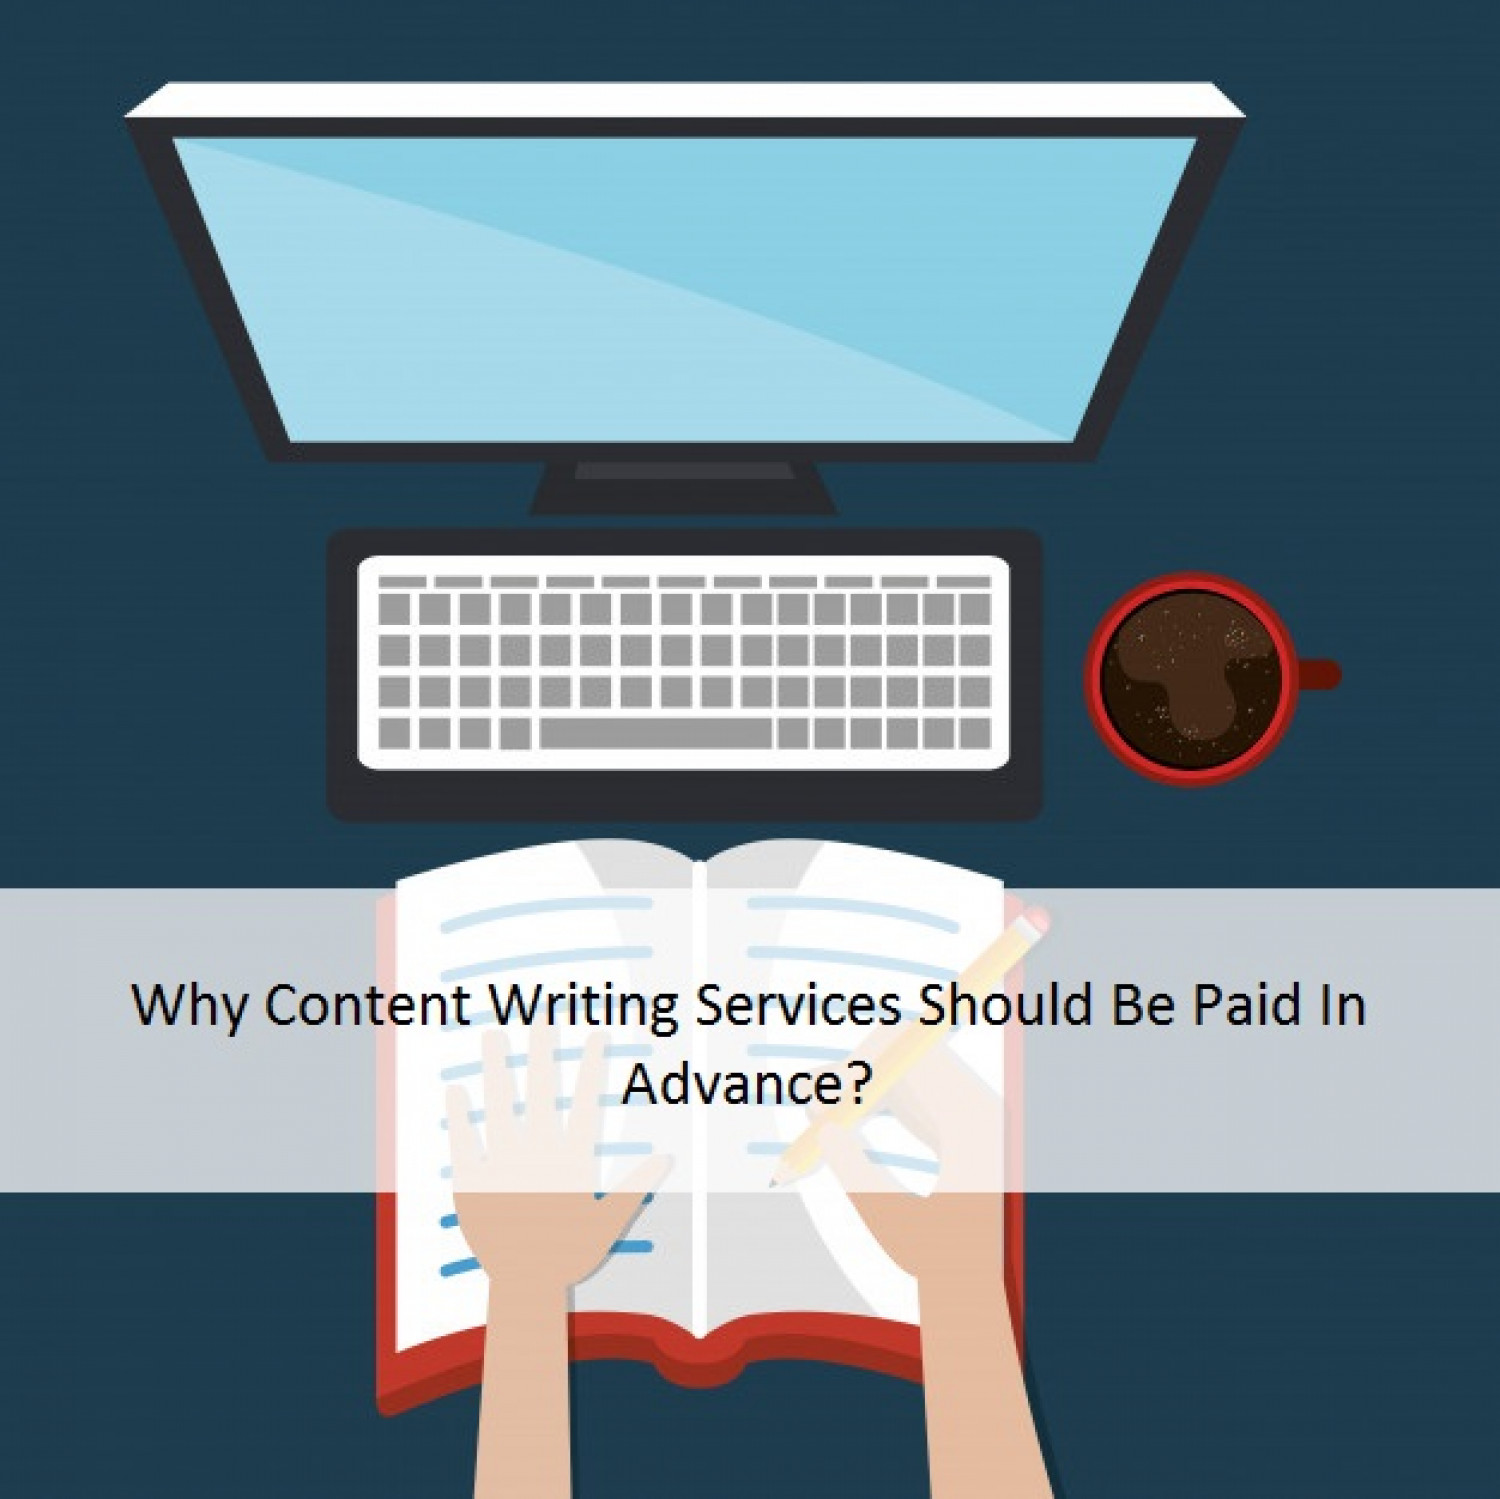 Why Content Writing Services Should Be Paid In Advance? Infographic